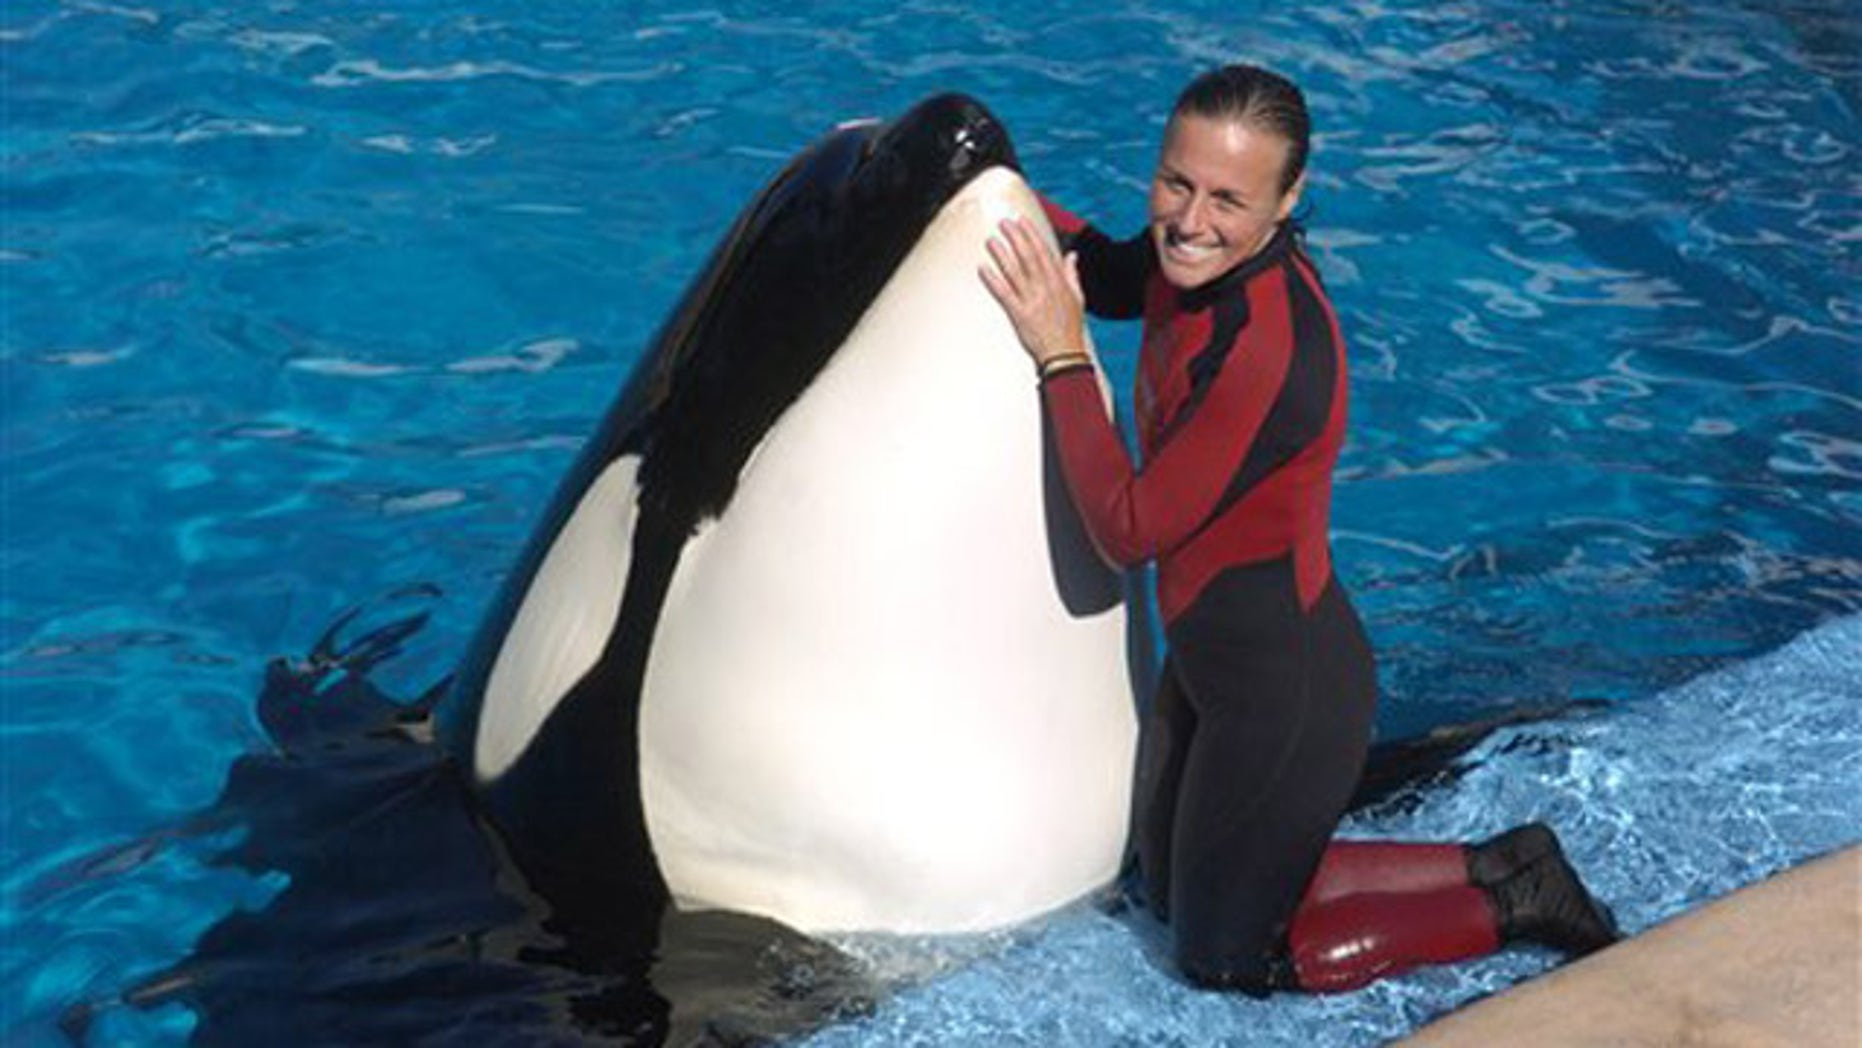 In this 2005 photo, Dawn Brancheau, a whale trainer at SeaWorld Adventure Park, poses while performing. Brancheau was killed in an accident with a killer whale at the SeaWorld Shamu Stadium Wednesday afternoon, Feb. 24, 2010.